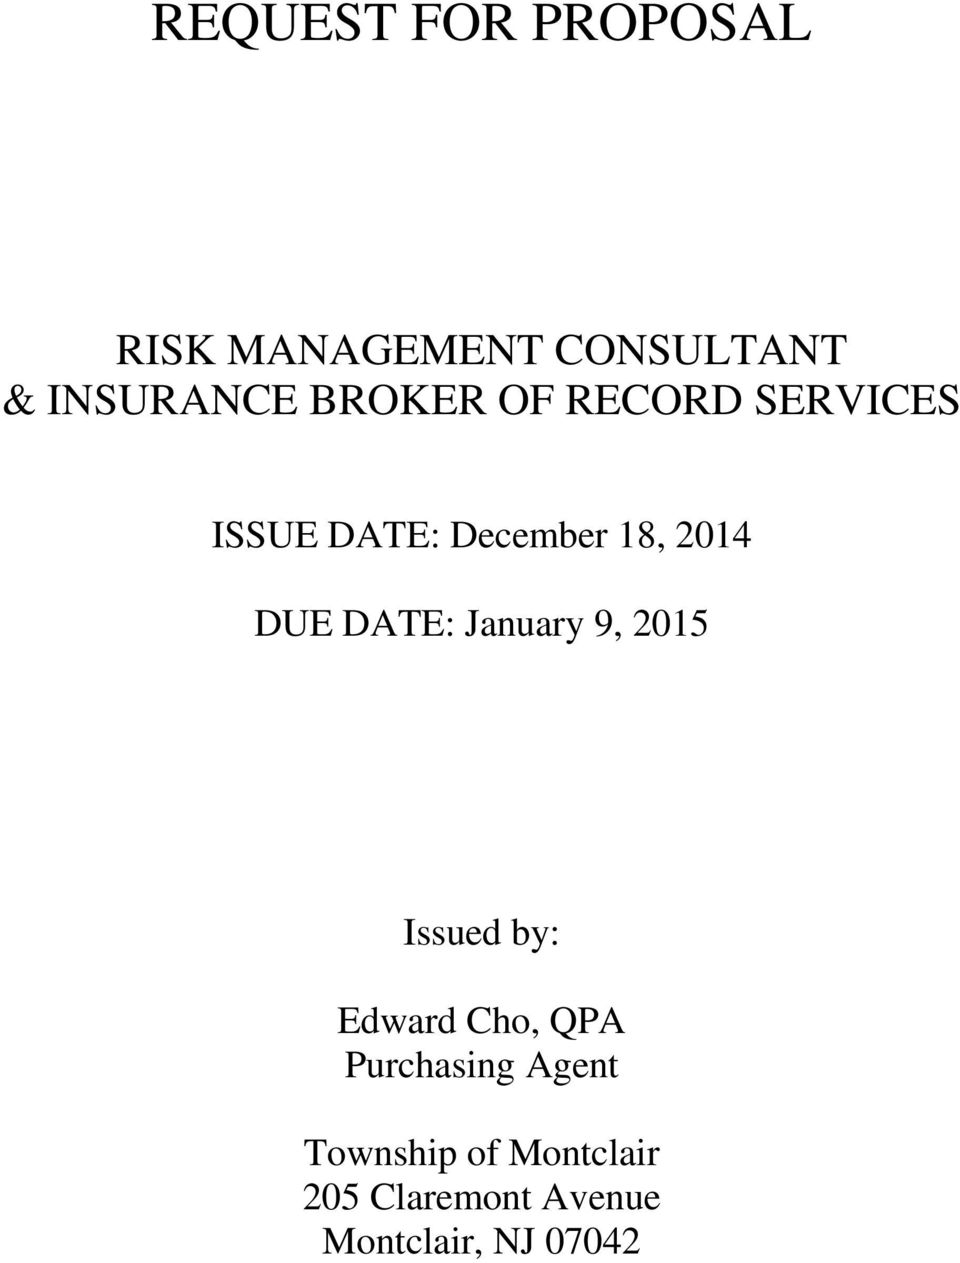 DATE: January 9, 2015 Issued by: Edward Cho, QPA Purchasing